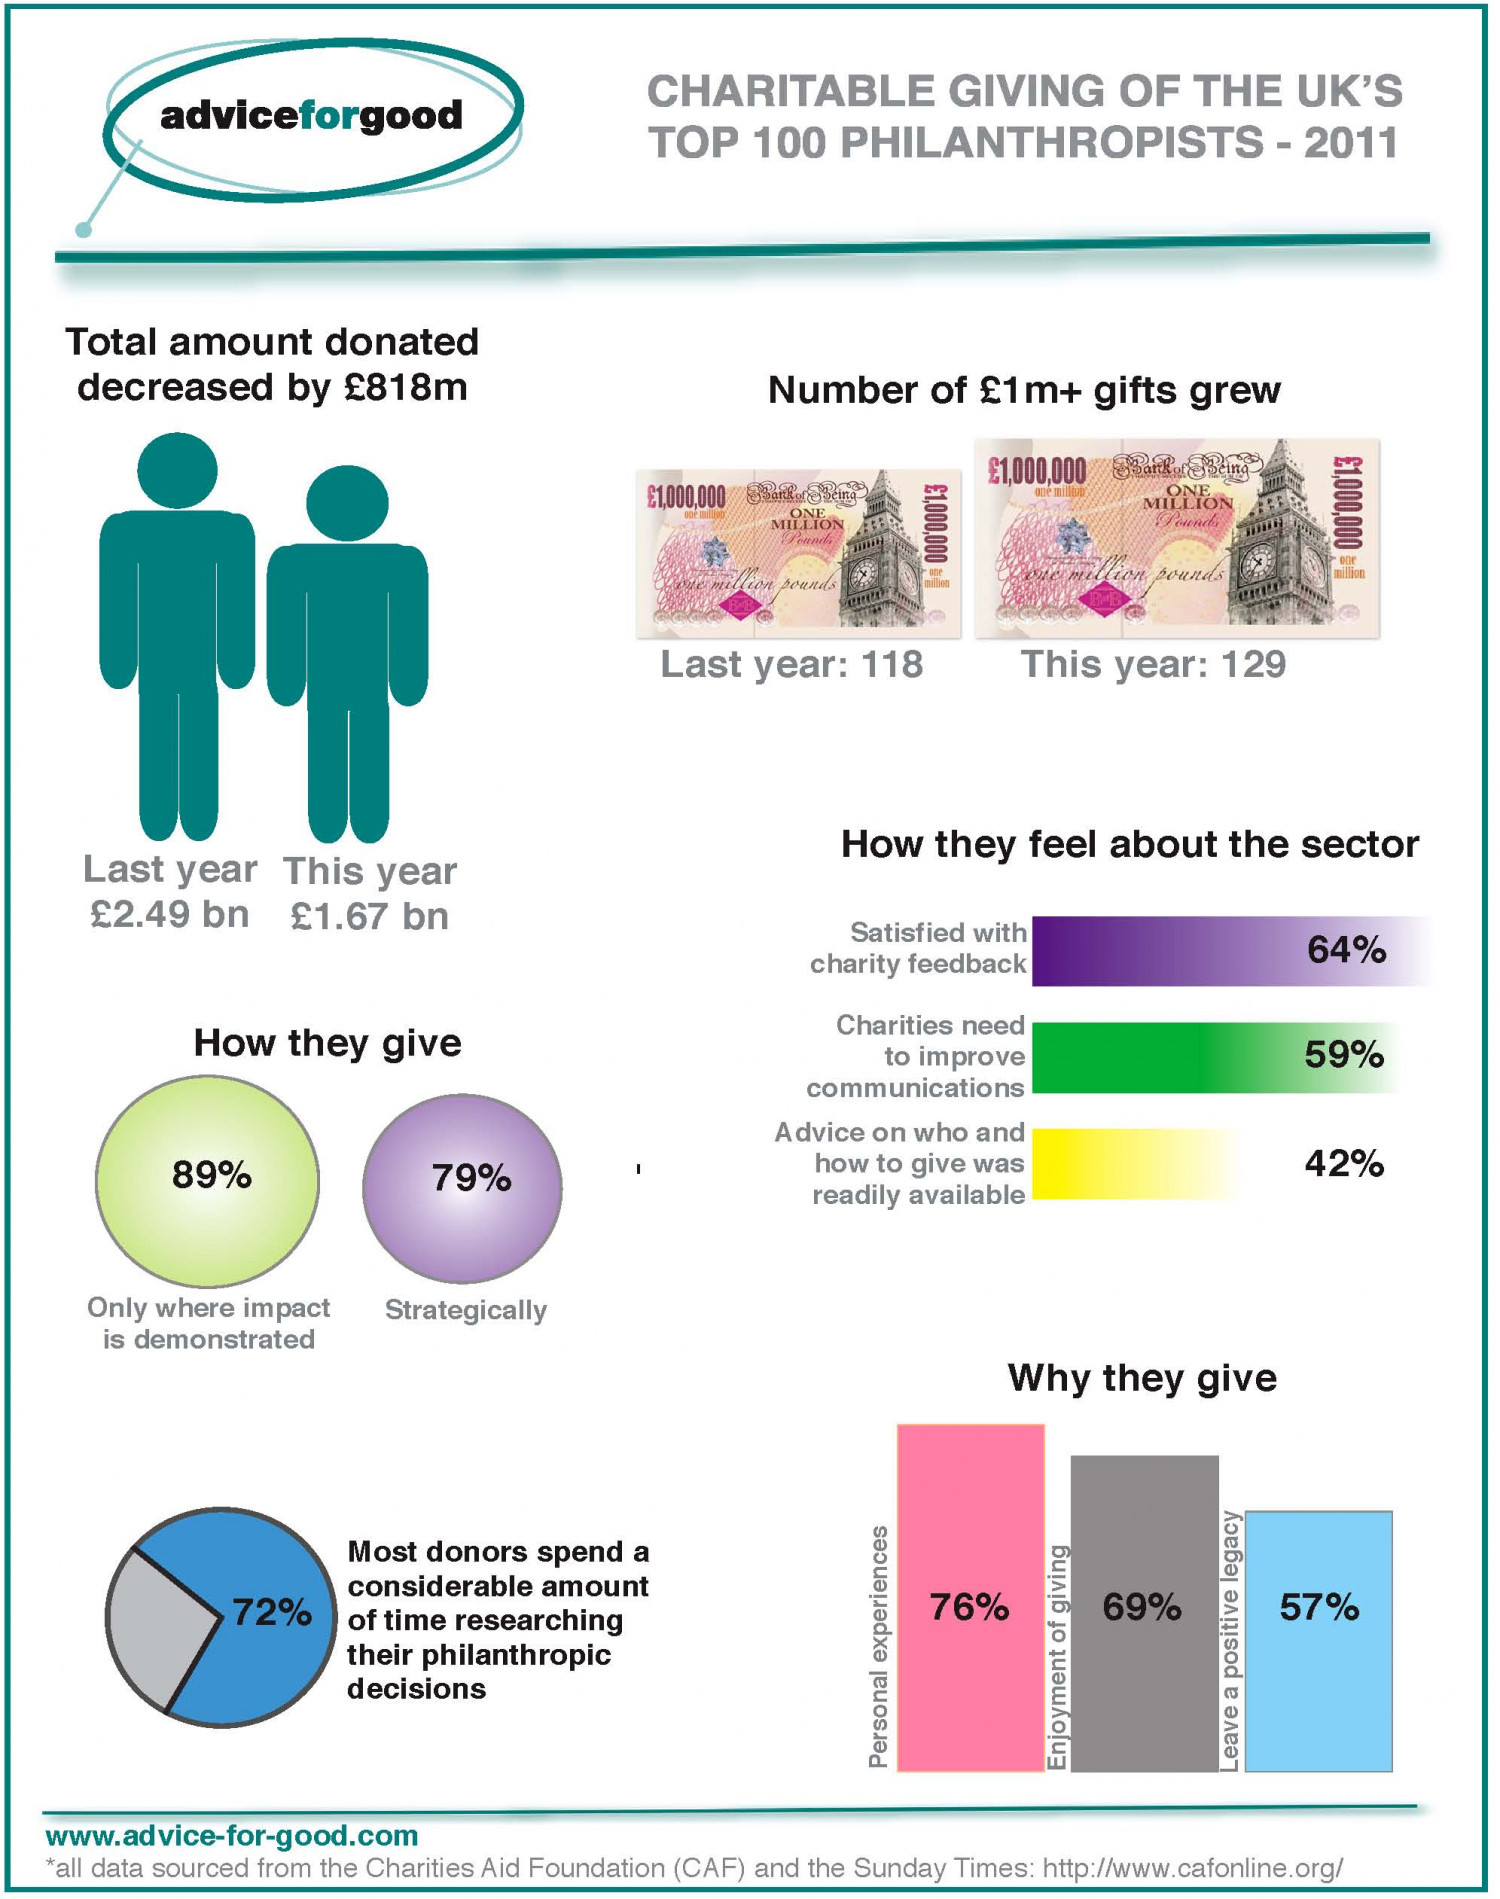 Charitable Giving by Top Philanthropists Infographic